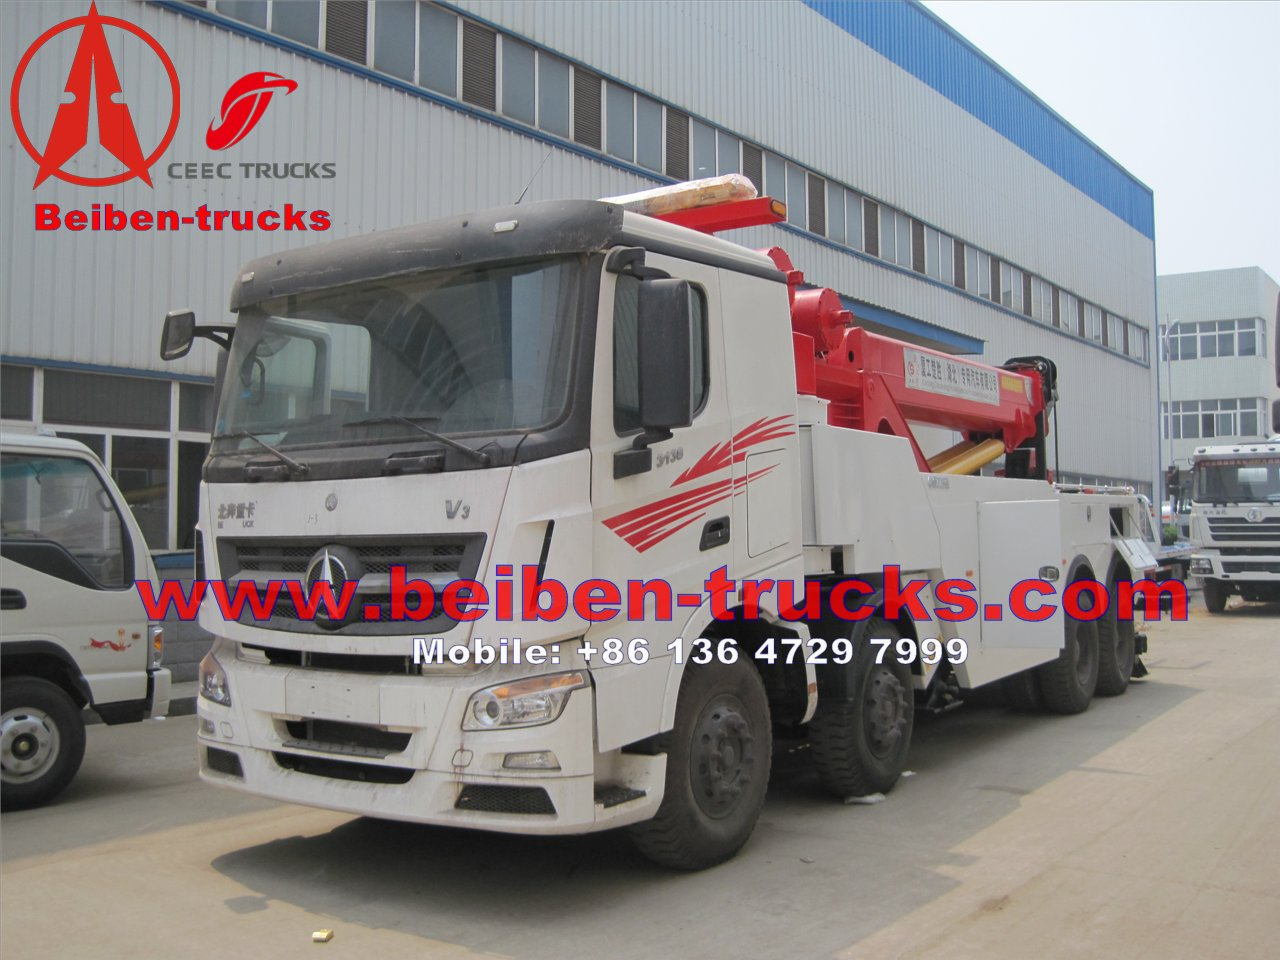 beiben North Benz 3138 Rotator Wrecker truck manufacturer